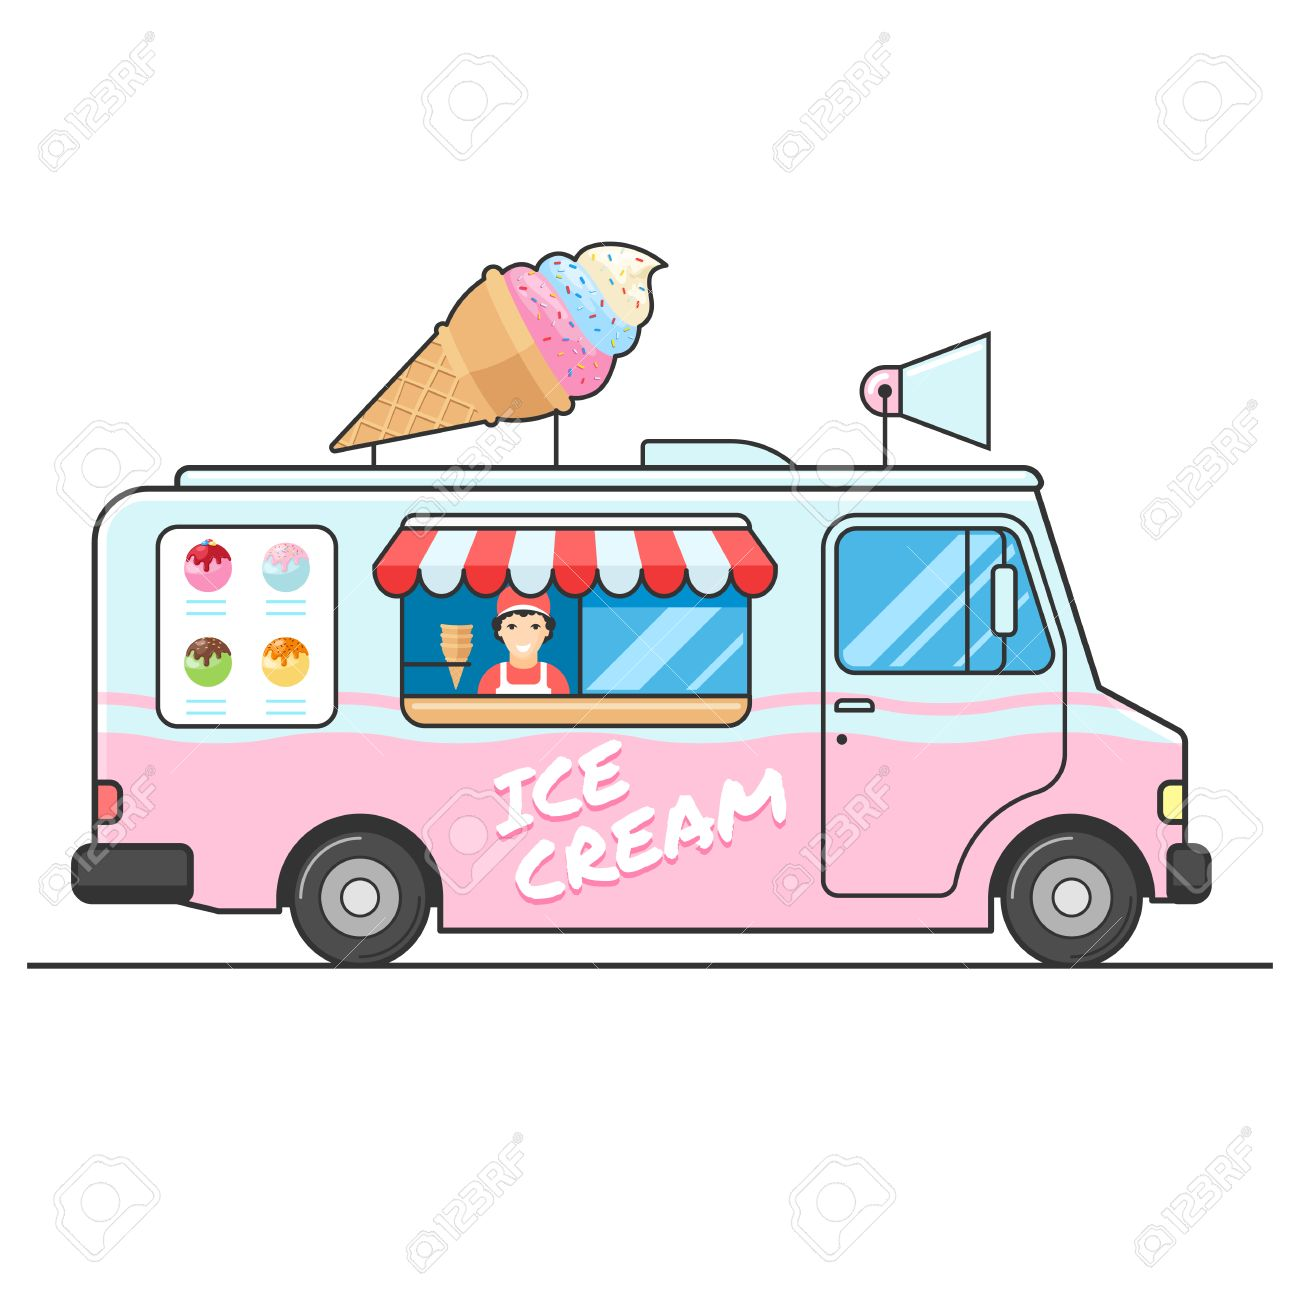 ice cream truck side view seller of ice cream in the van ice rh 123rf com free ice cream truck clipart ice cream truck clip art free